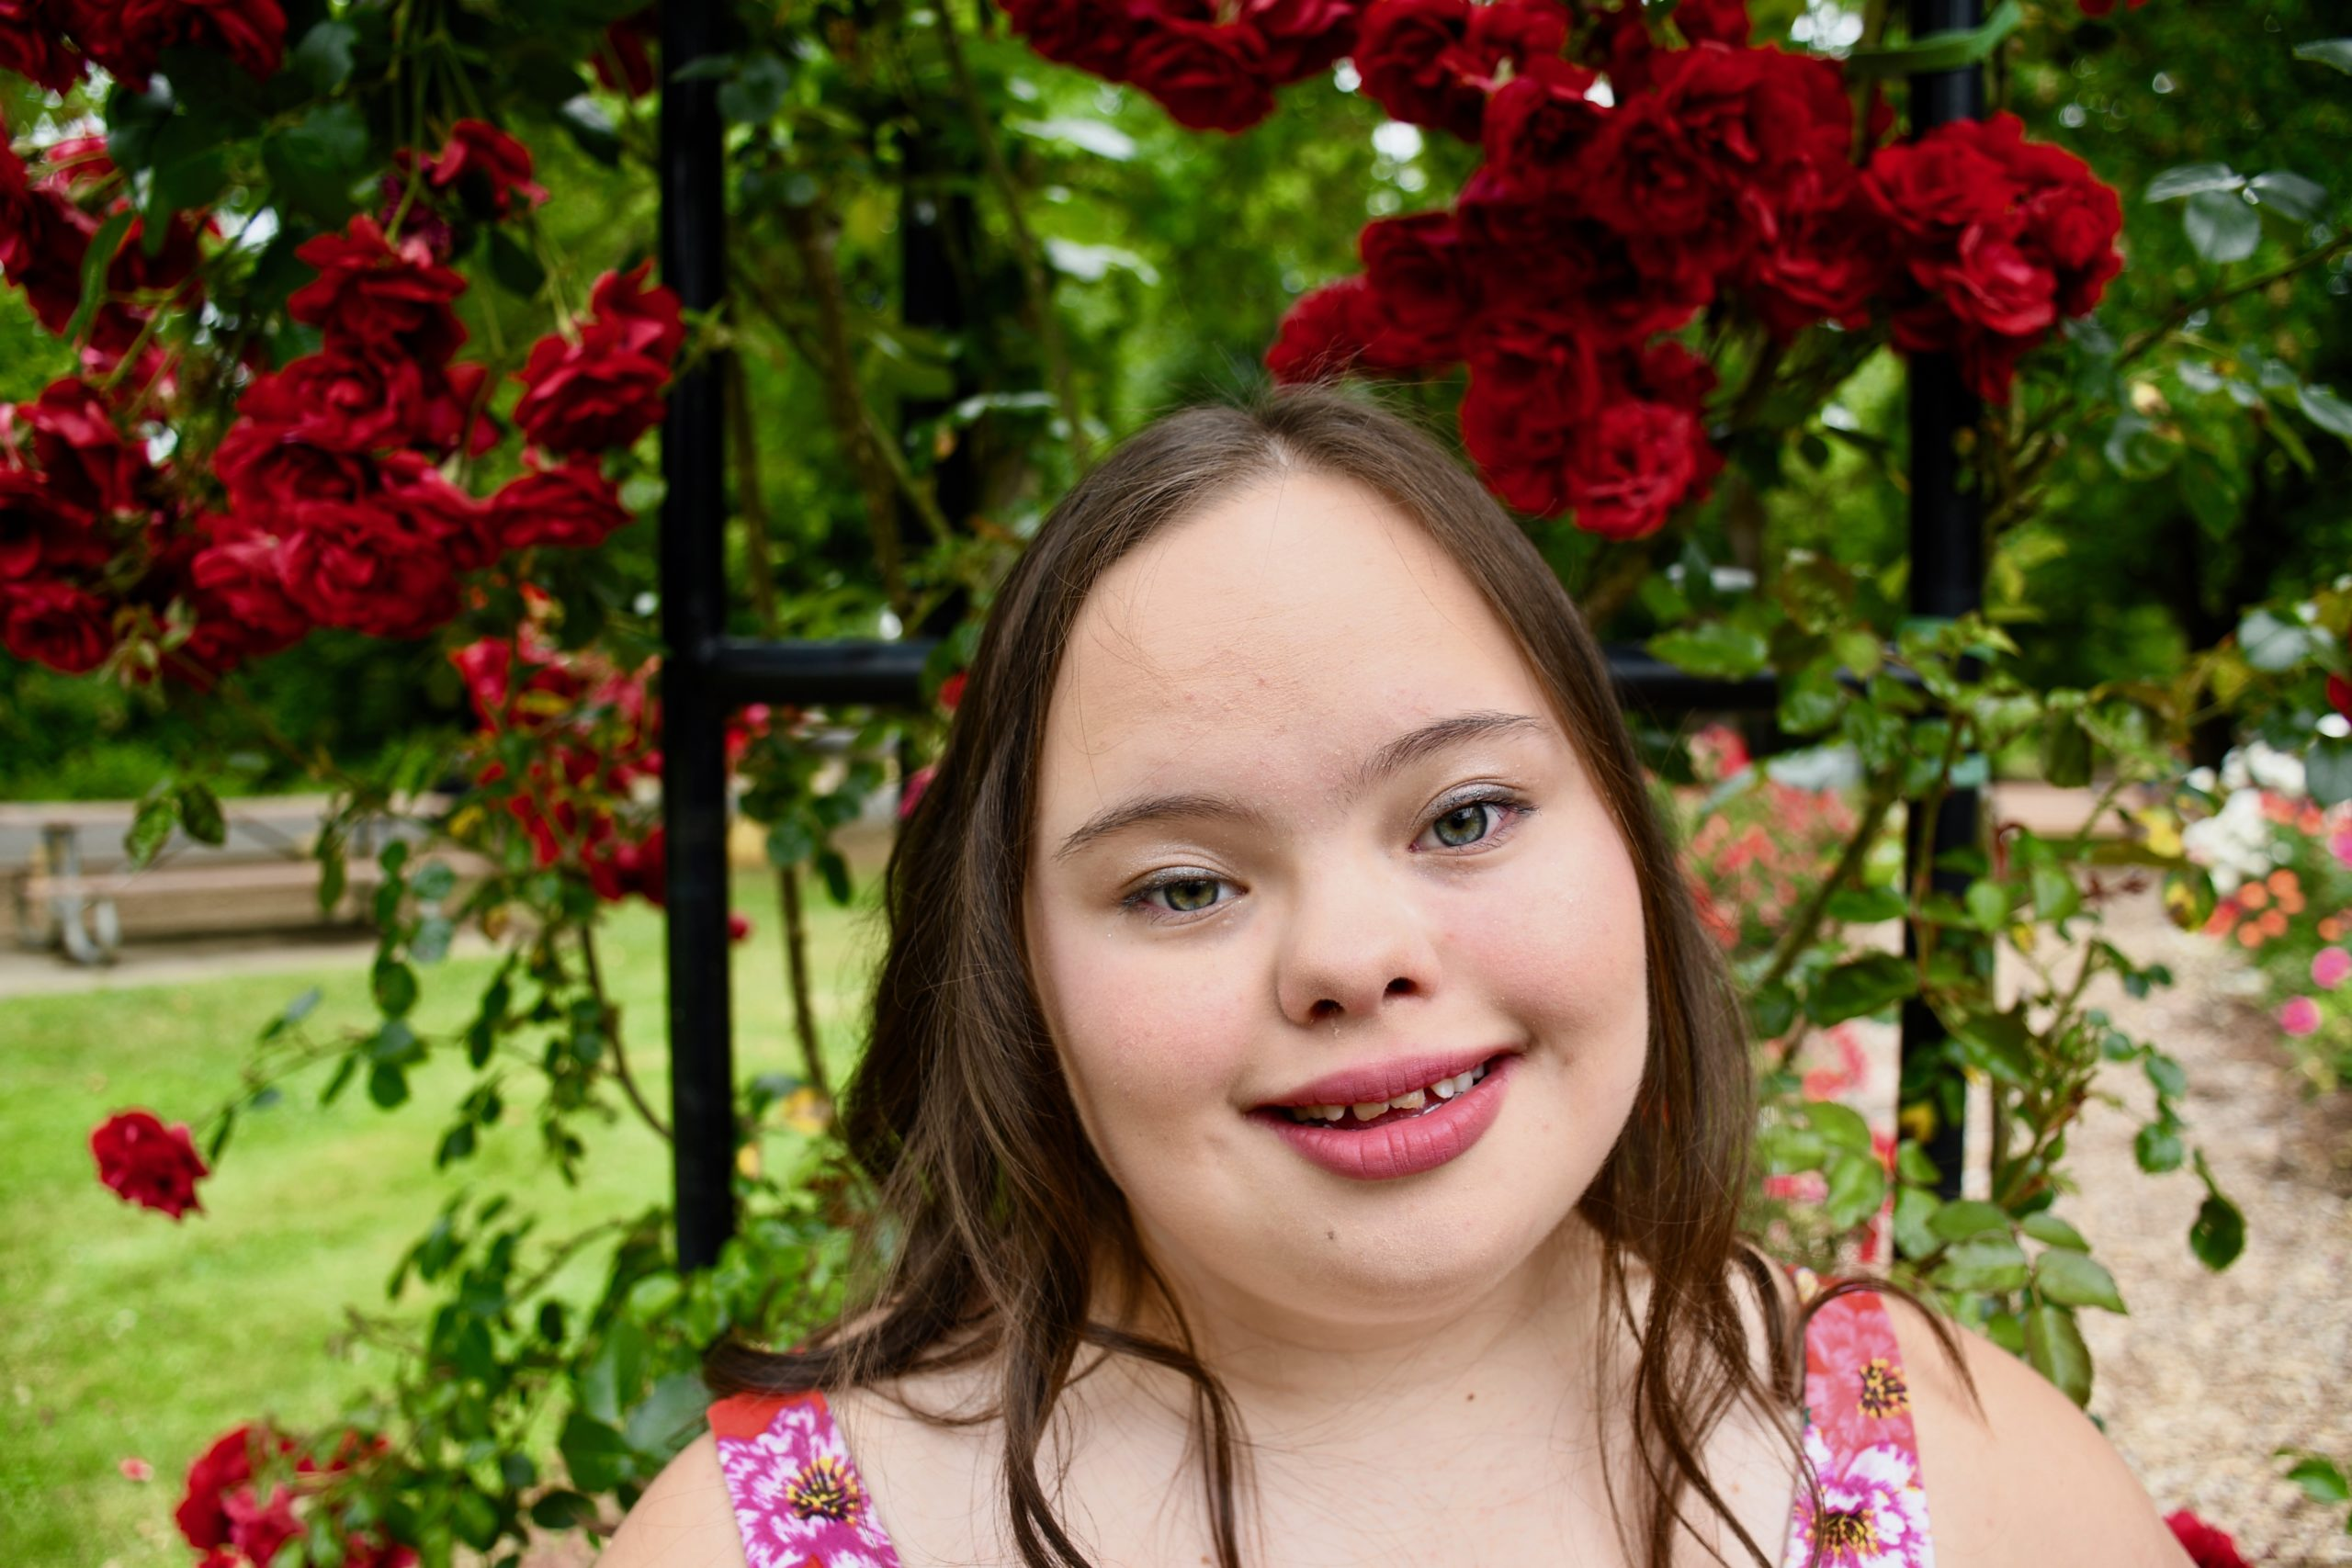 Photo of Laura Estreich, a young white girl with Downs syndrome. She has long brown hair and she is wearing a floral dress. Laura is smiling at the camera. She is standing in front of a red rose bush